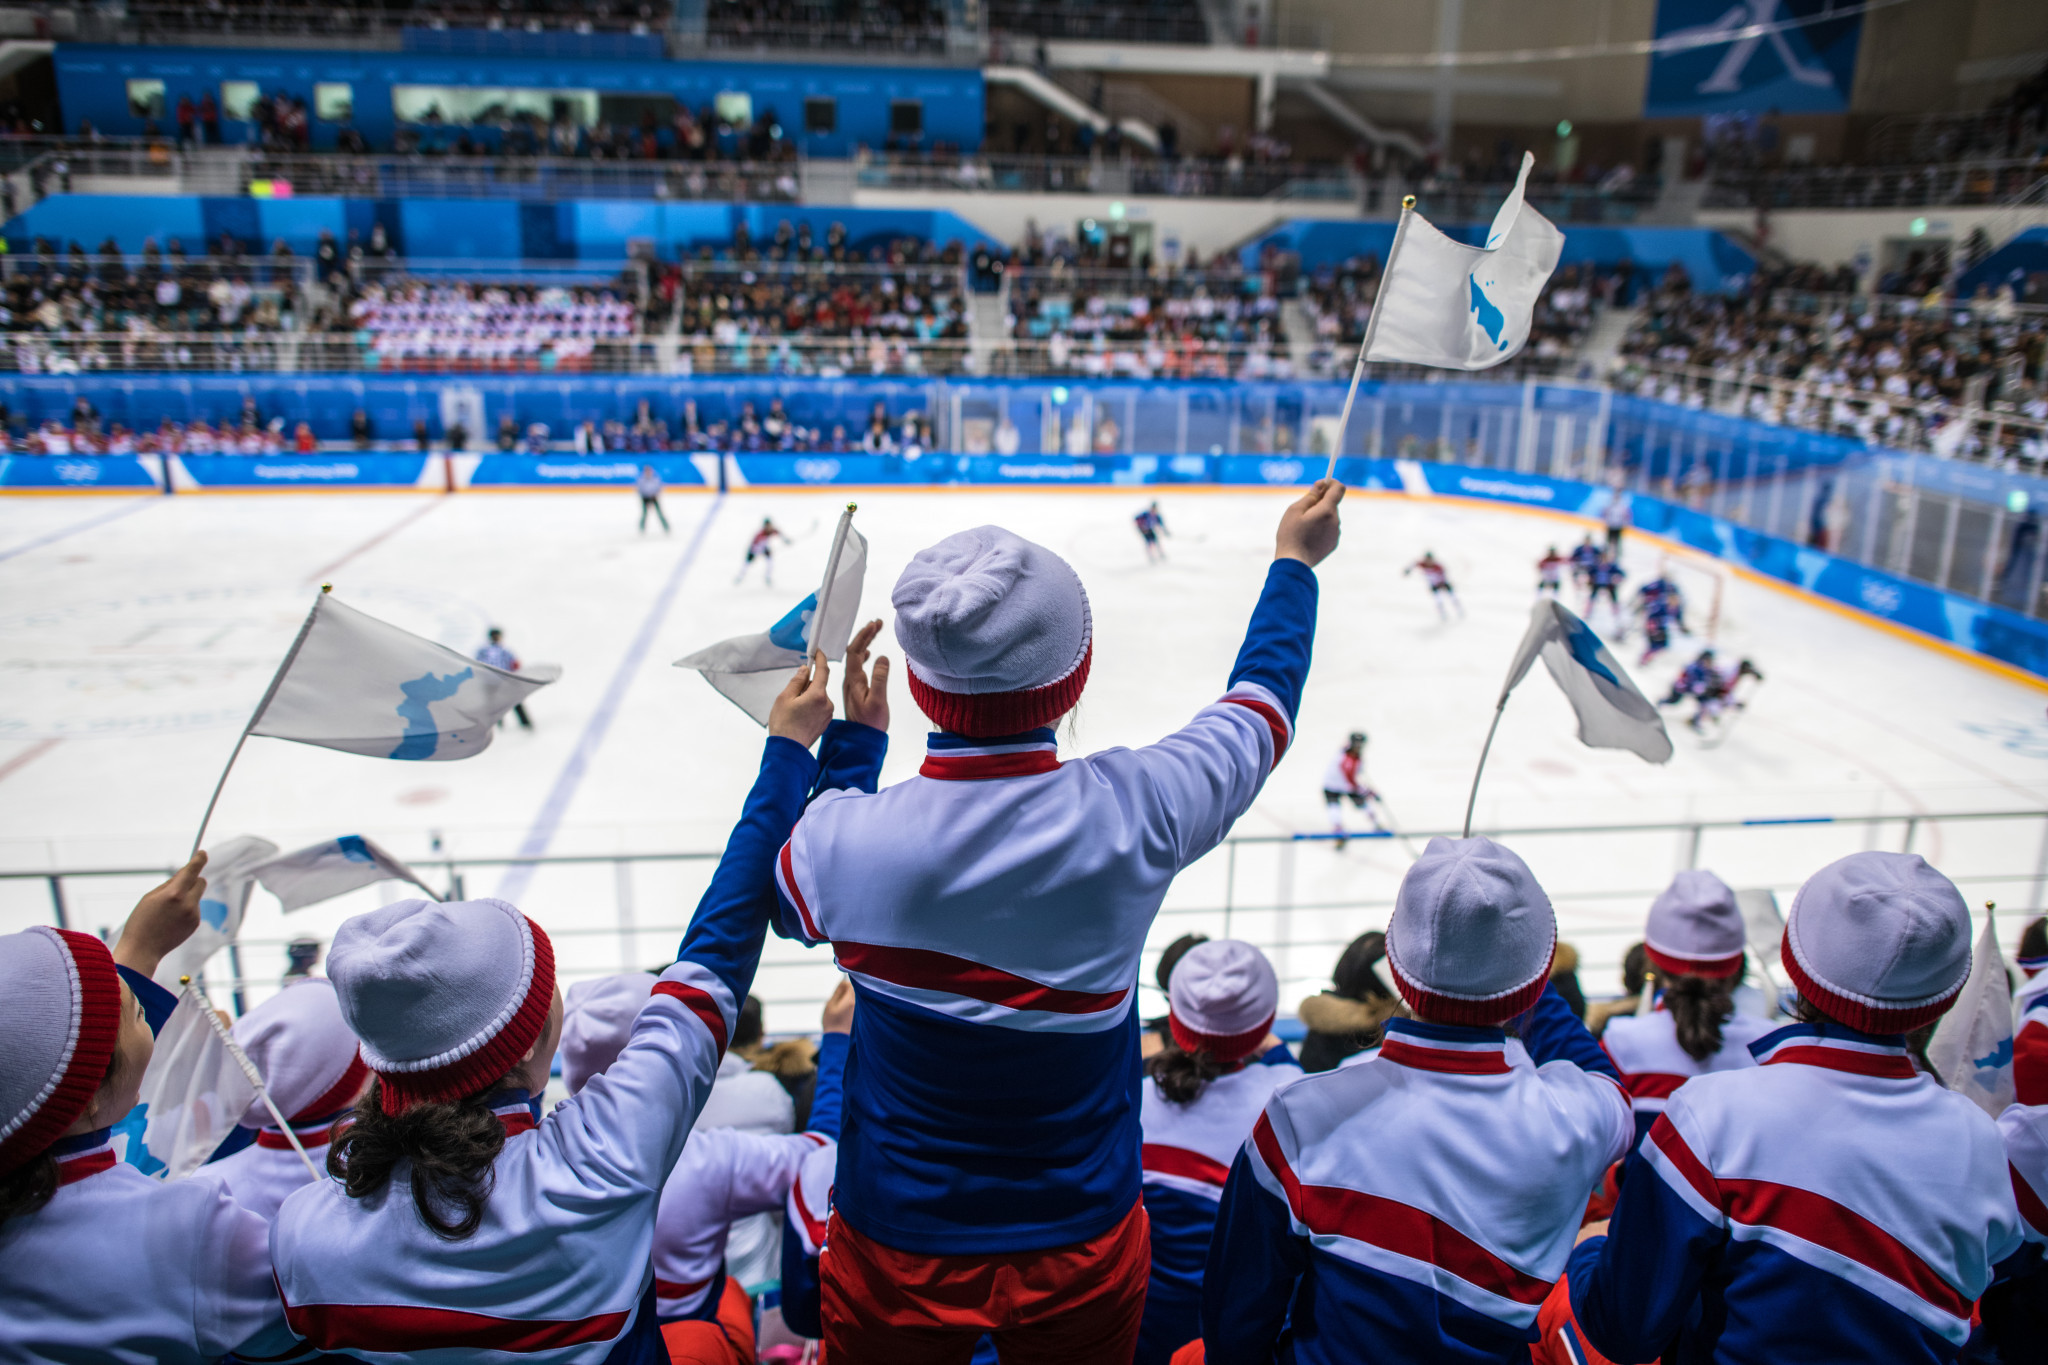 A joint Korea team competed in the women's ice hockey event at Pyeongchang 2018 and were supported by fans waving the unified flag ©Getty Images